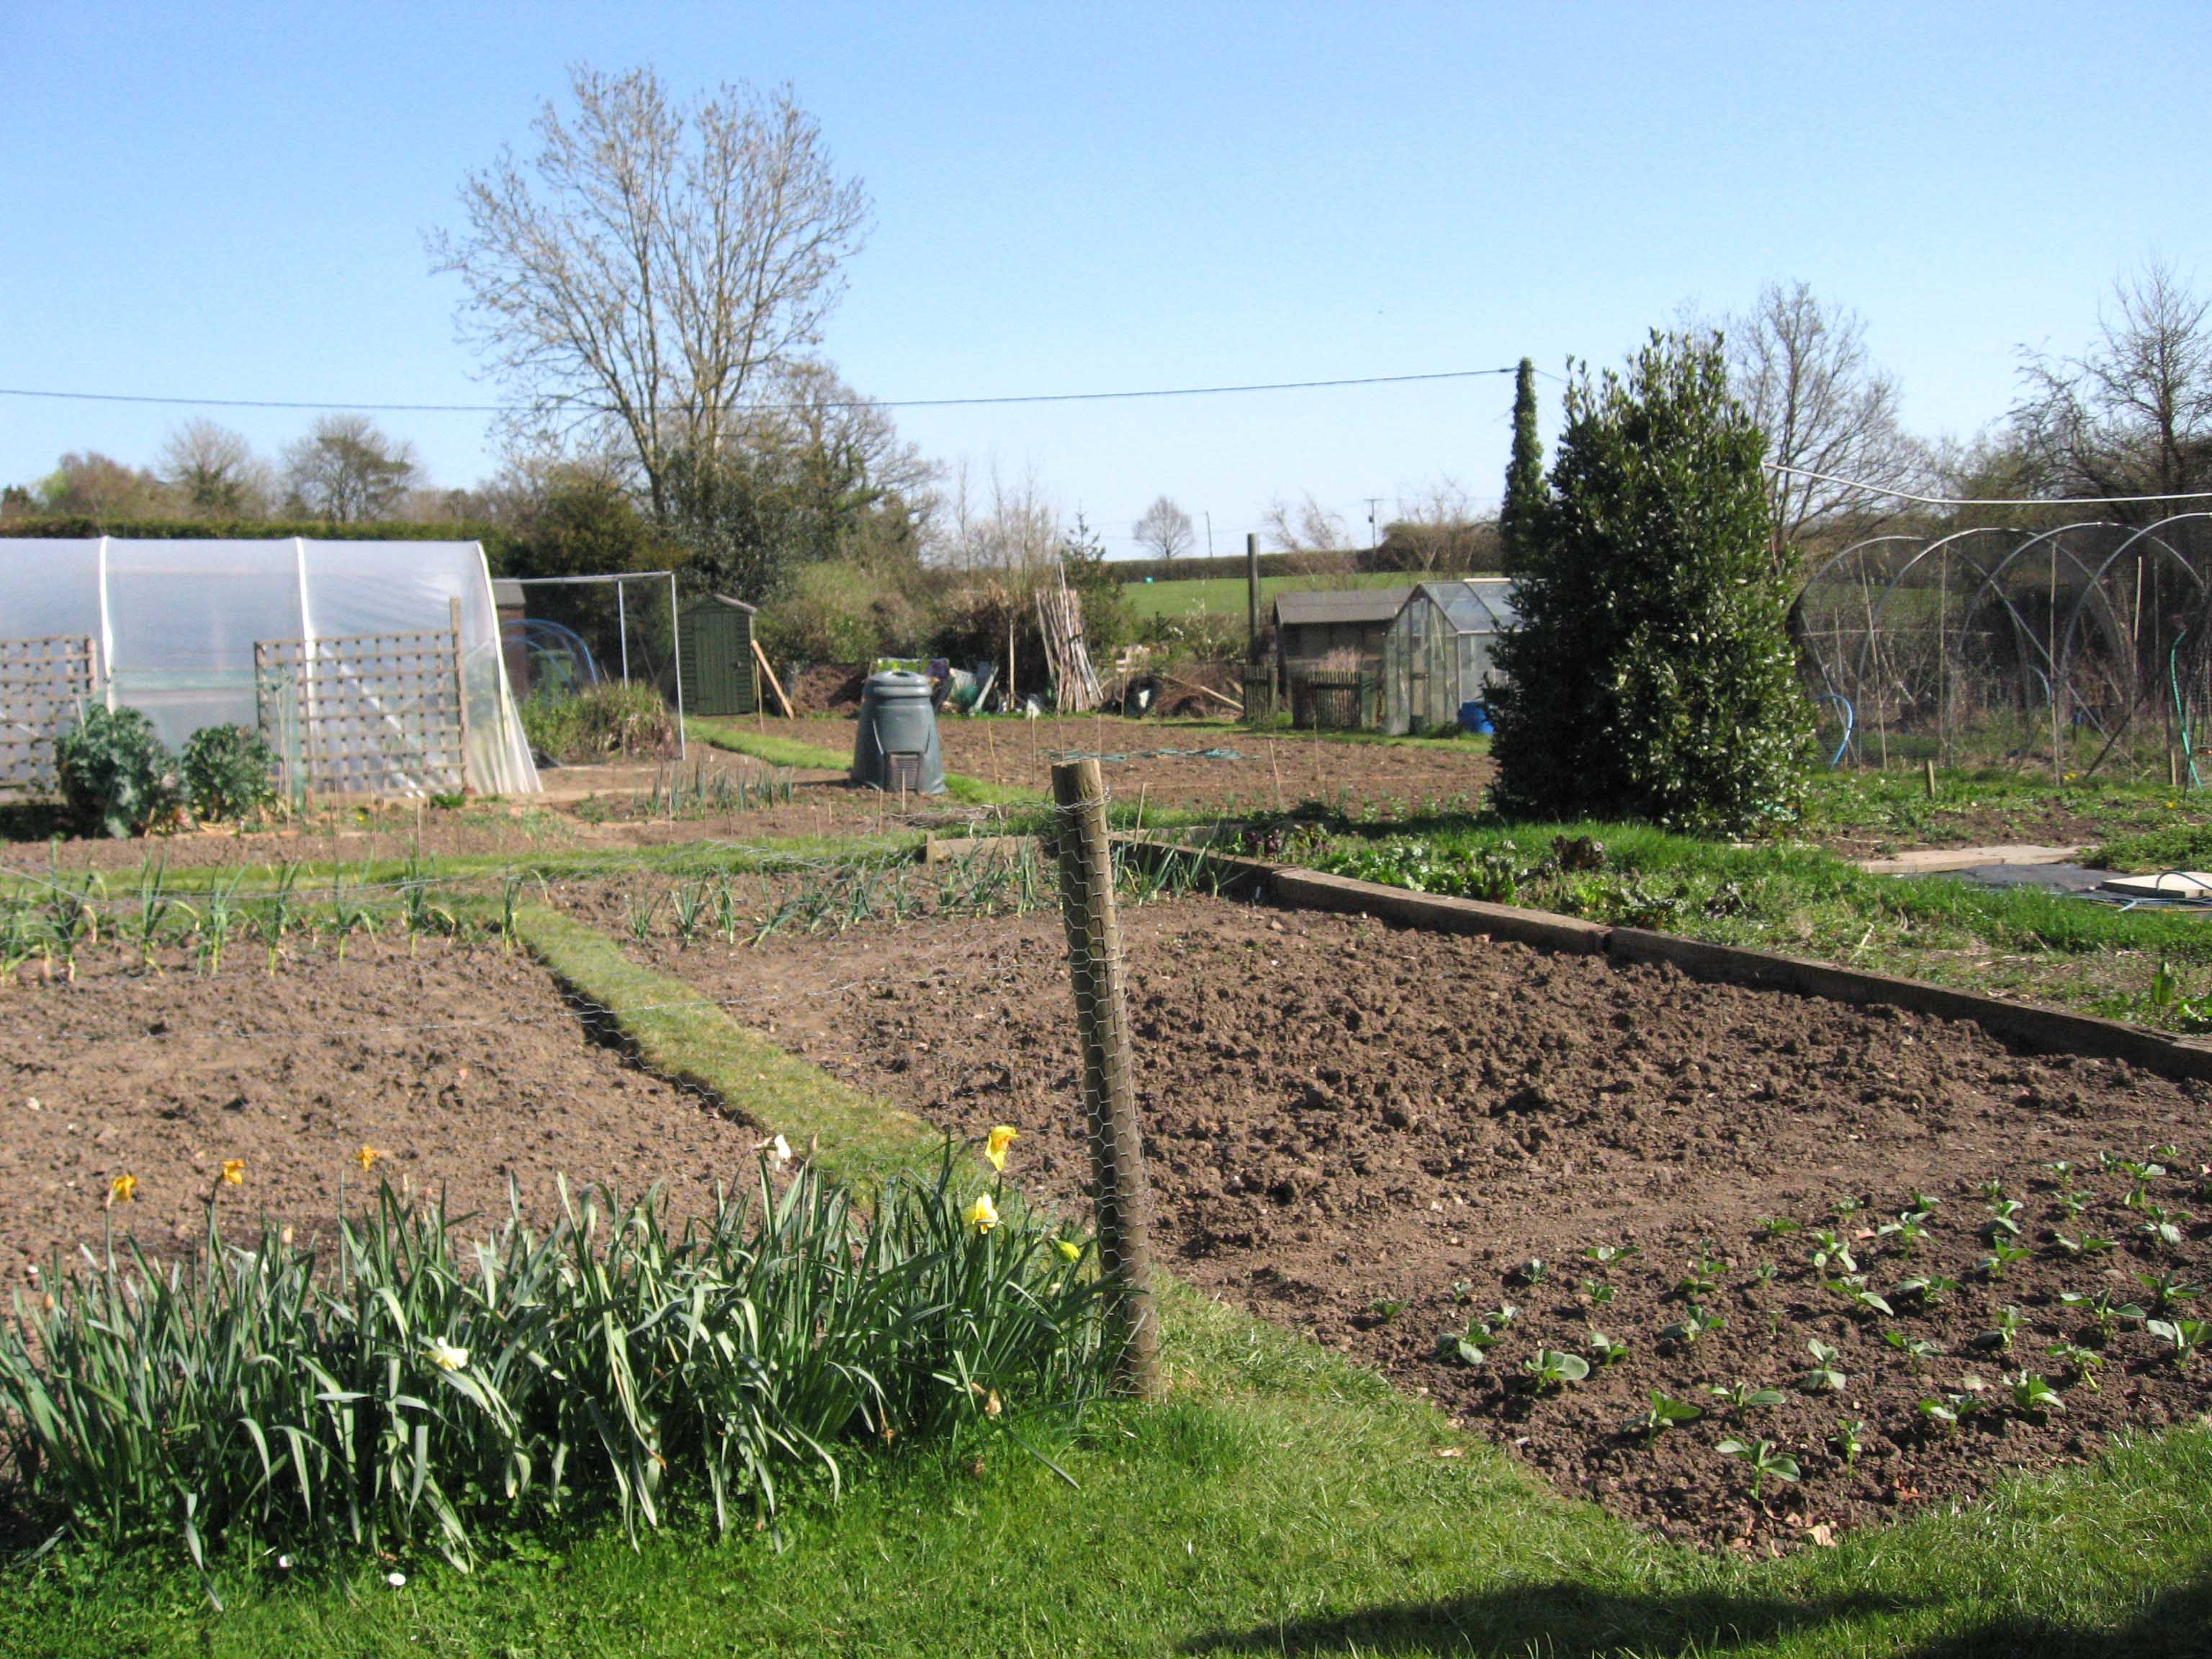 An allotment plot cultivated and ready for planting